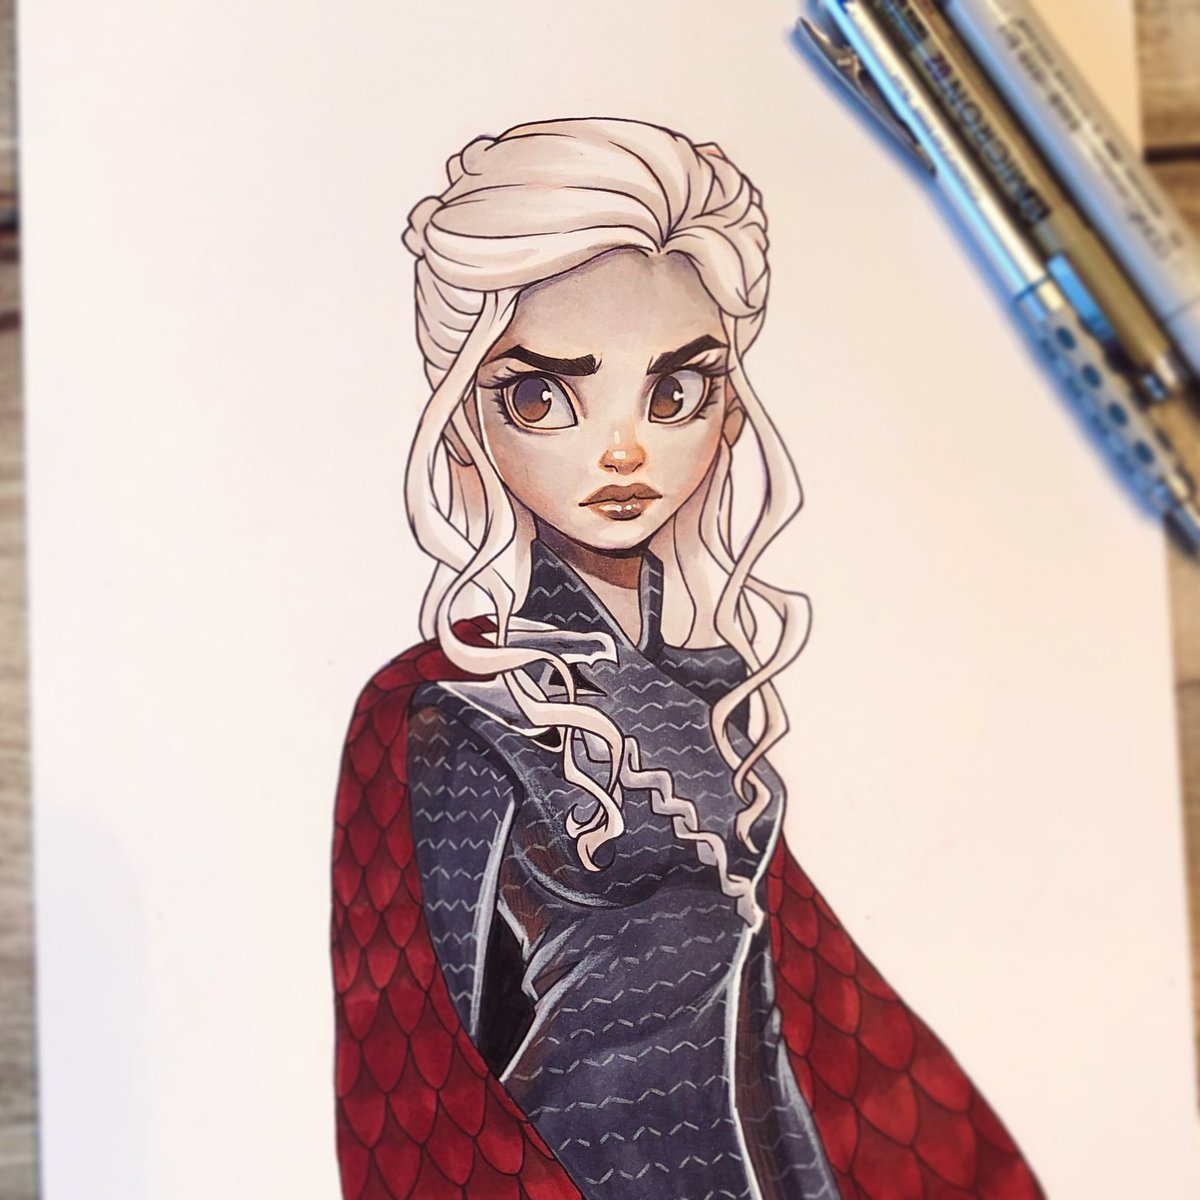 Daenerys commission 🐉. I miss waiting for new episodes of GoT 😭... #sketch #doodle #drawing #art #traditionalart #animation #cartoon #daenerystargaryen #gameofthrones #emiliaclarke #artists #artistsoninstagram https://t.co/zhNgRjvS2a